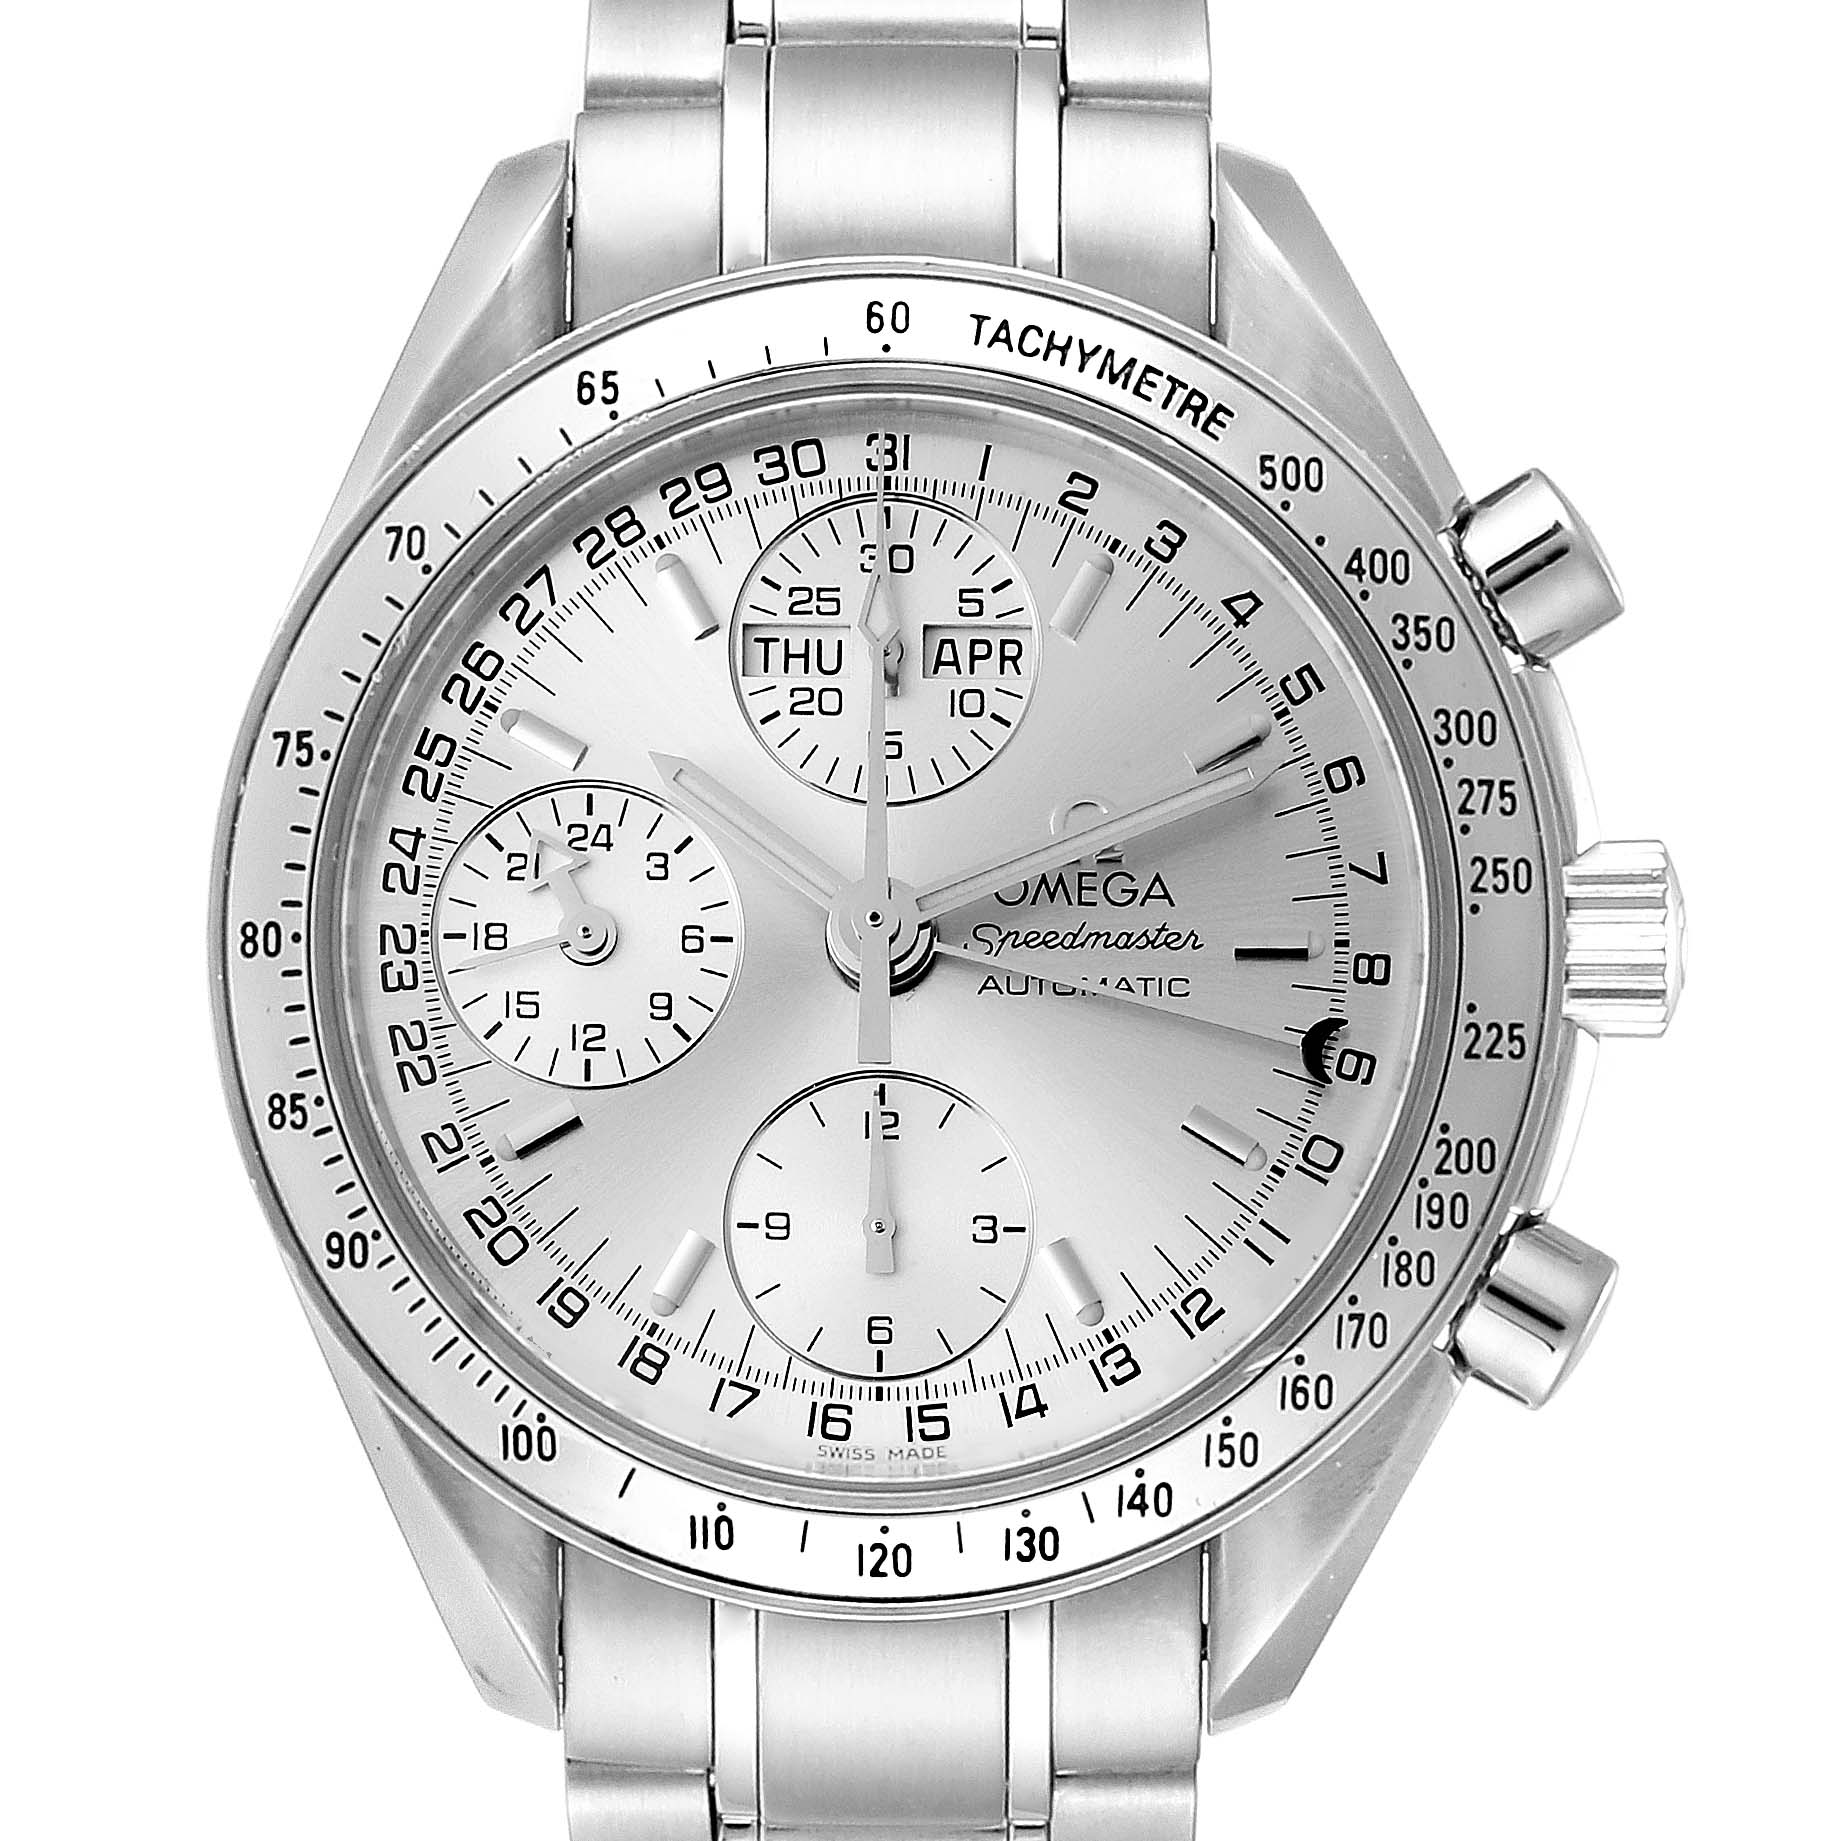 Photo of Omega Speedmaster Day Date Chronograph Silver Dial Mens Watch 3523.30.00